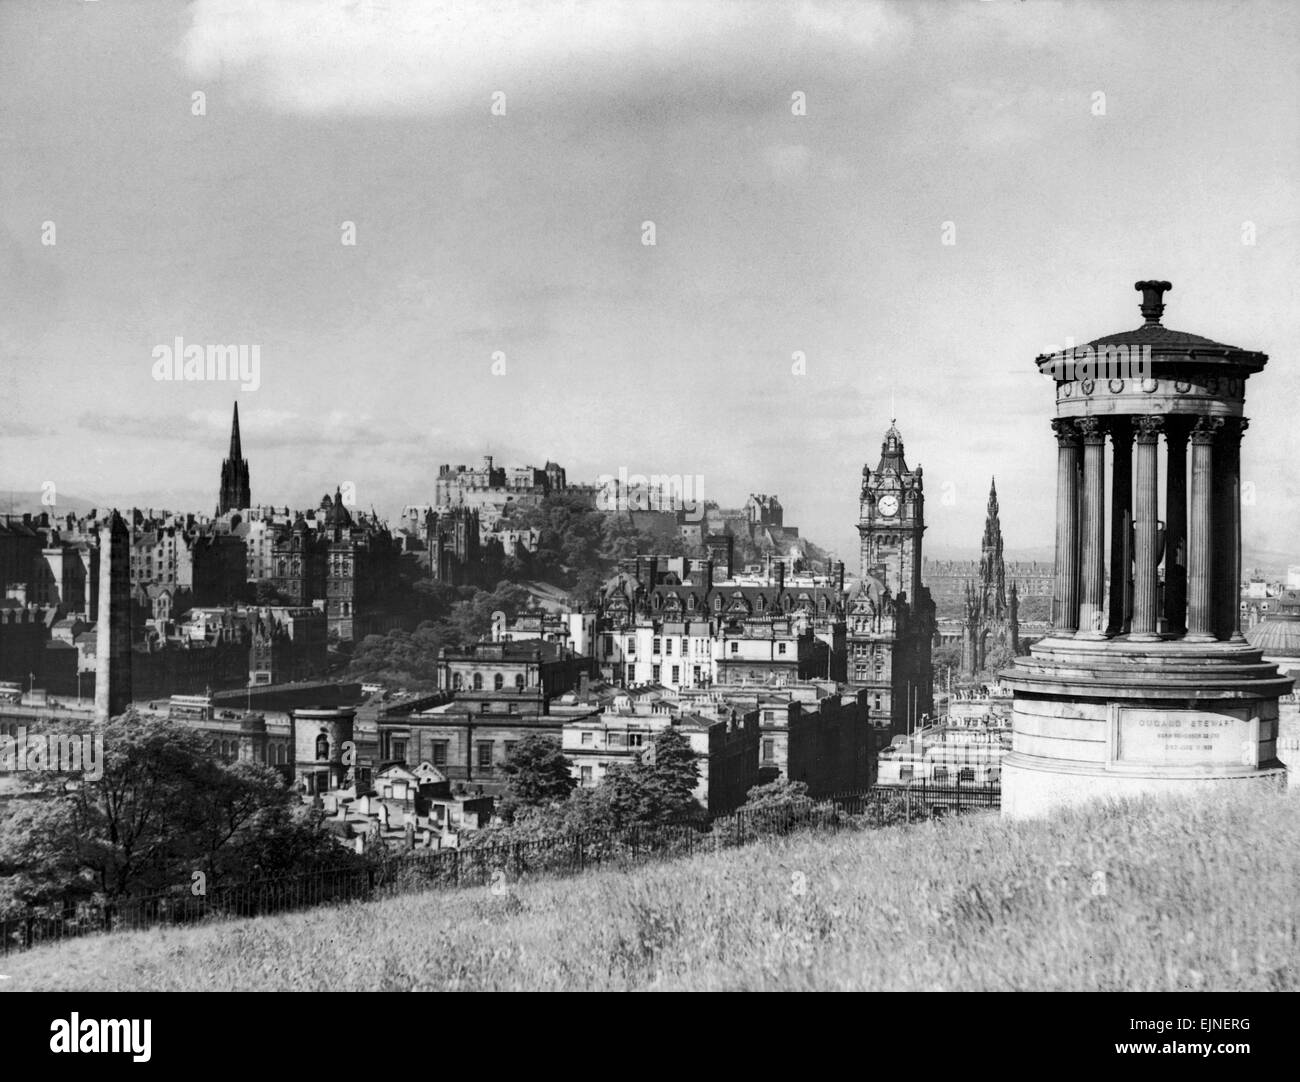 A view of Edinburgh showing the Castle, June 1947 - Stock Image